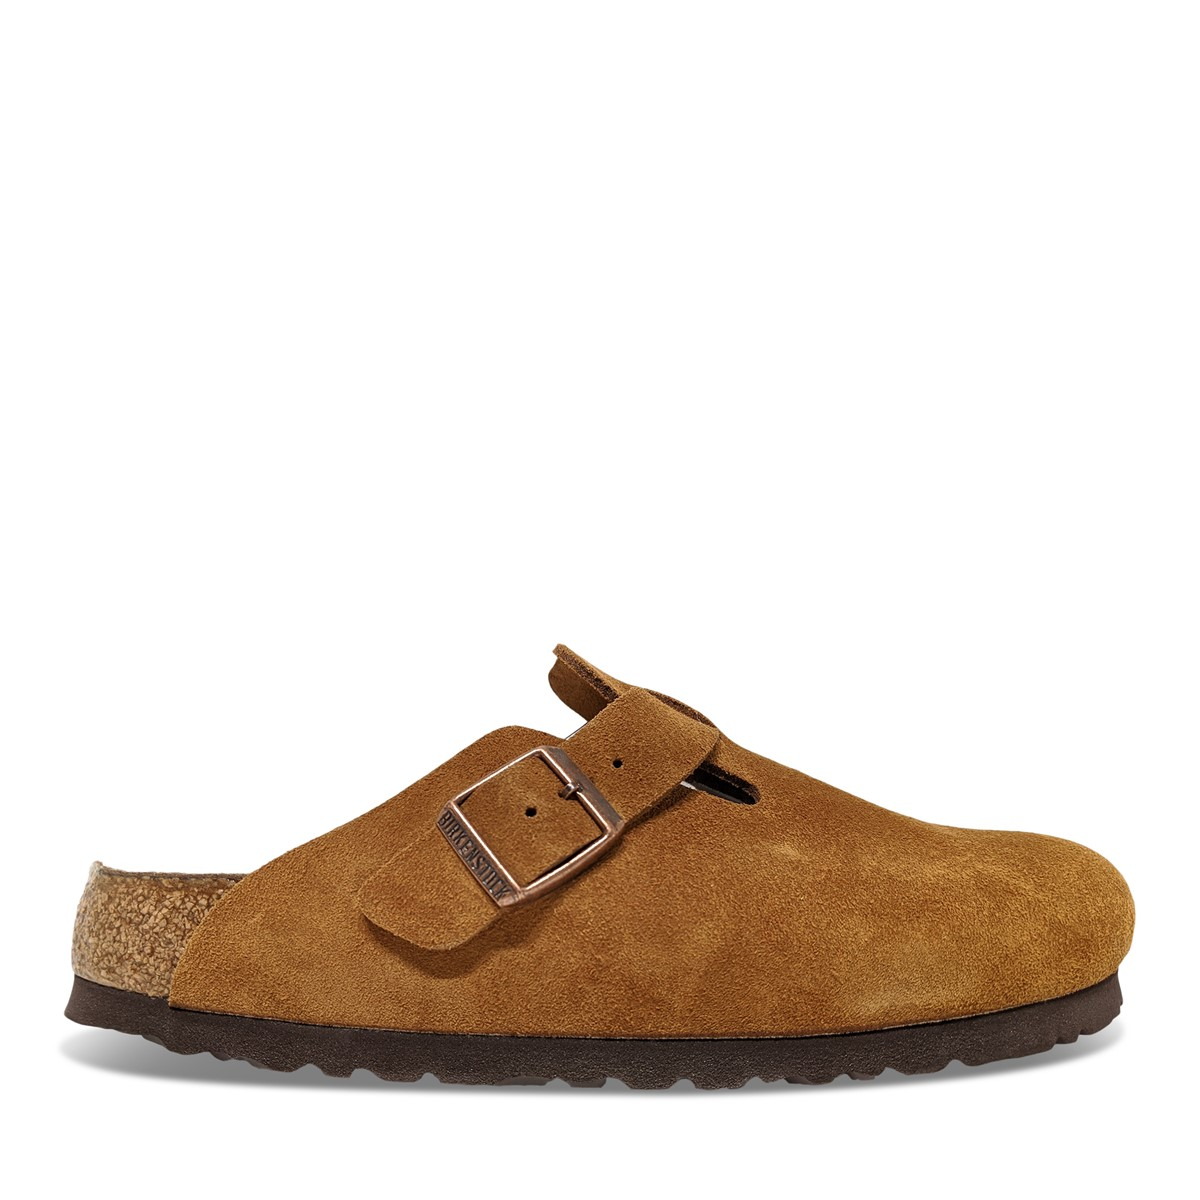 Women's Boston Clogs in Beige